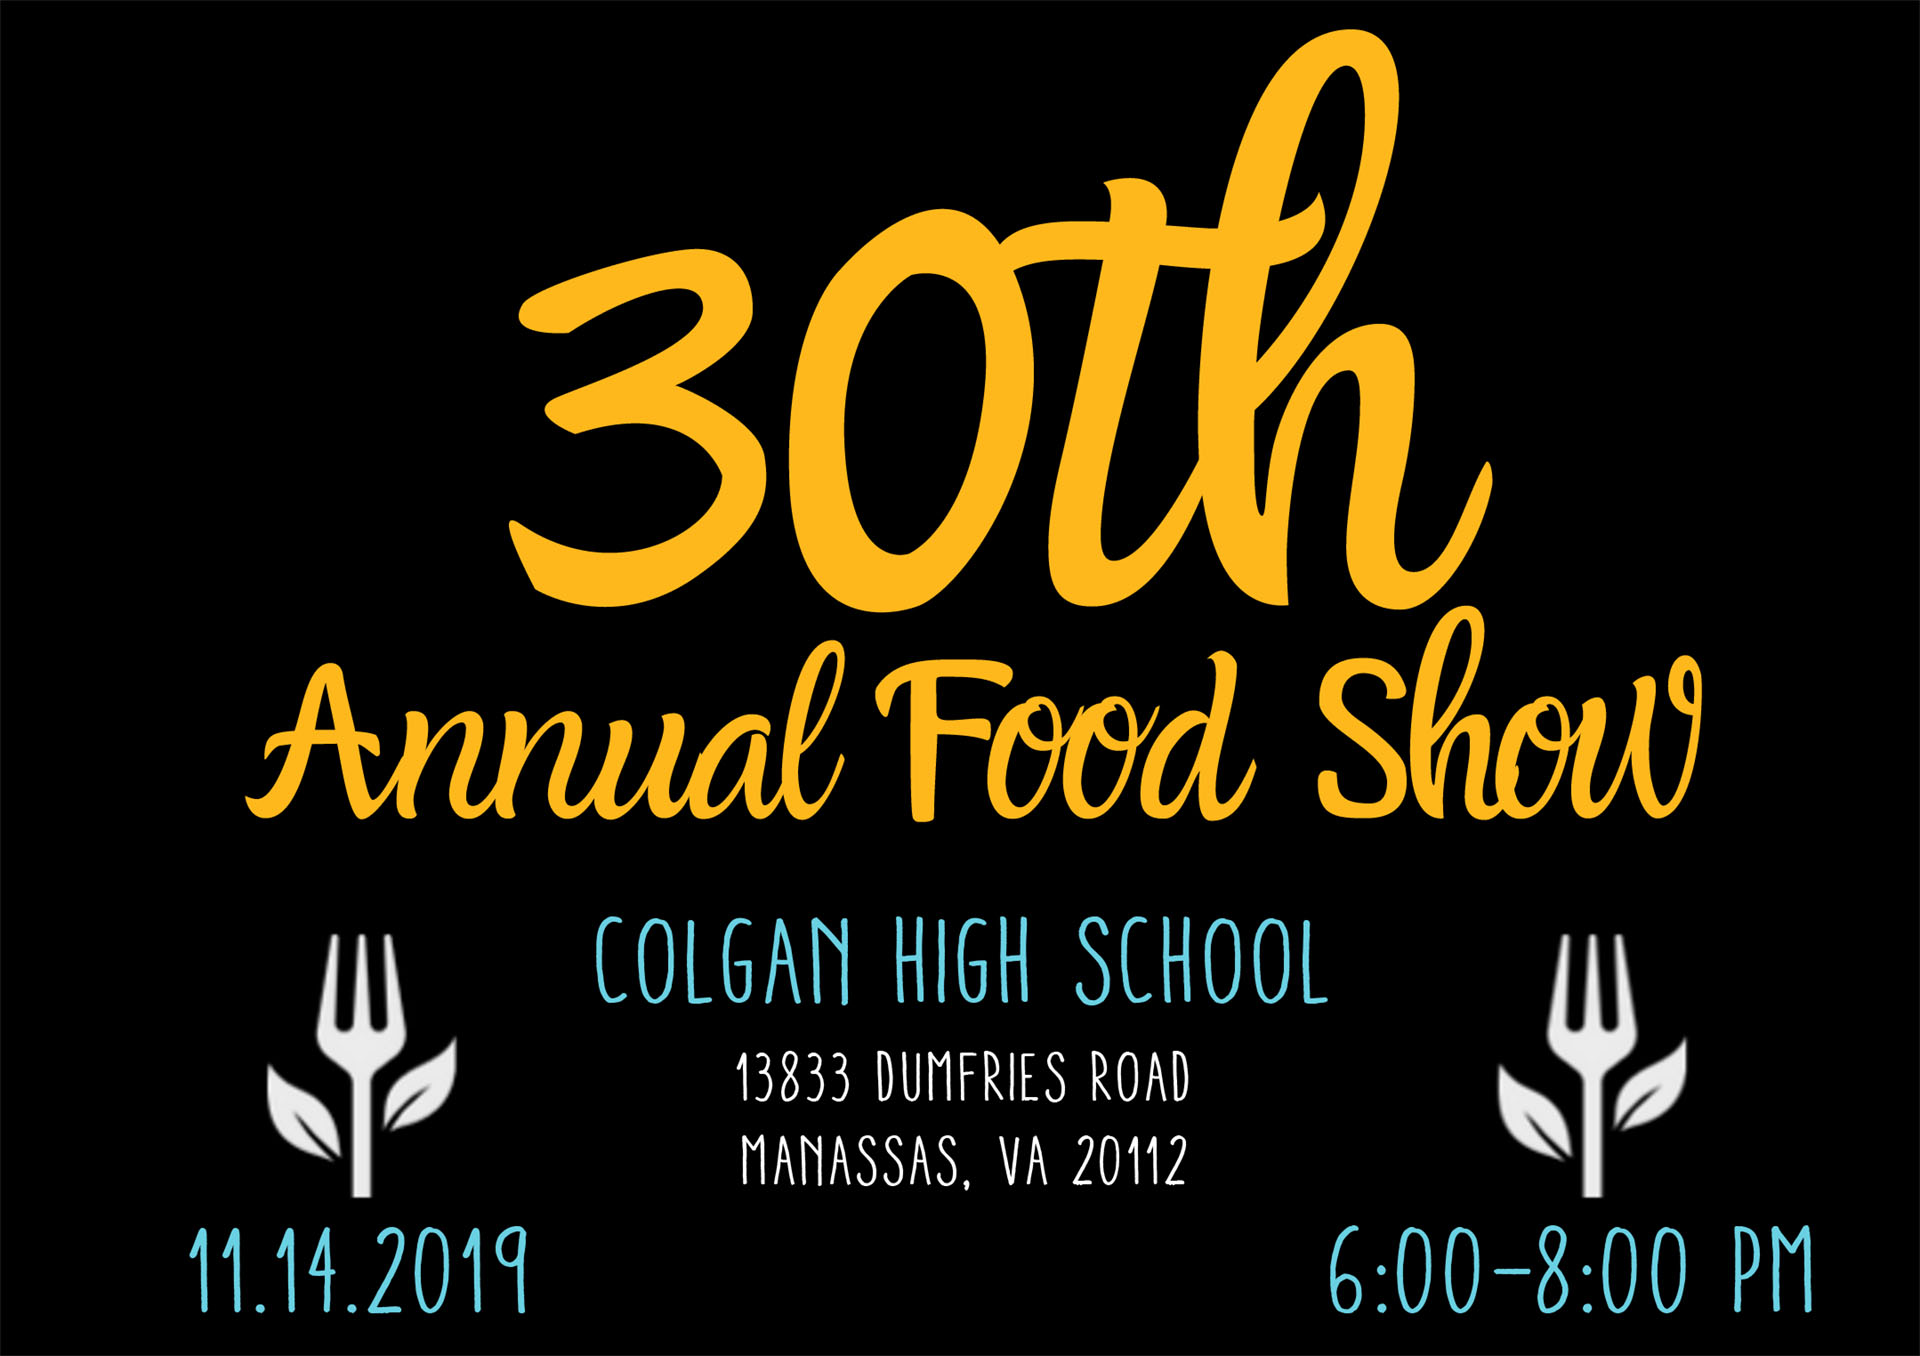 Food Show to feature possible school menu items